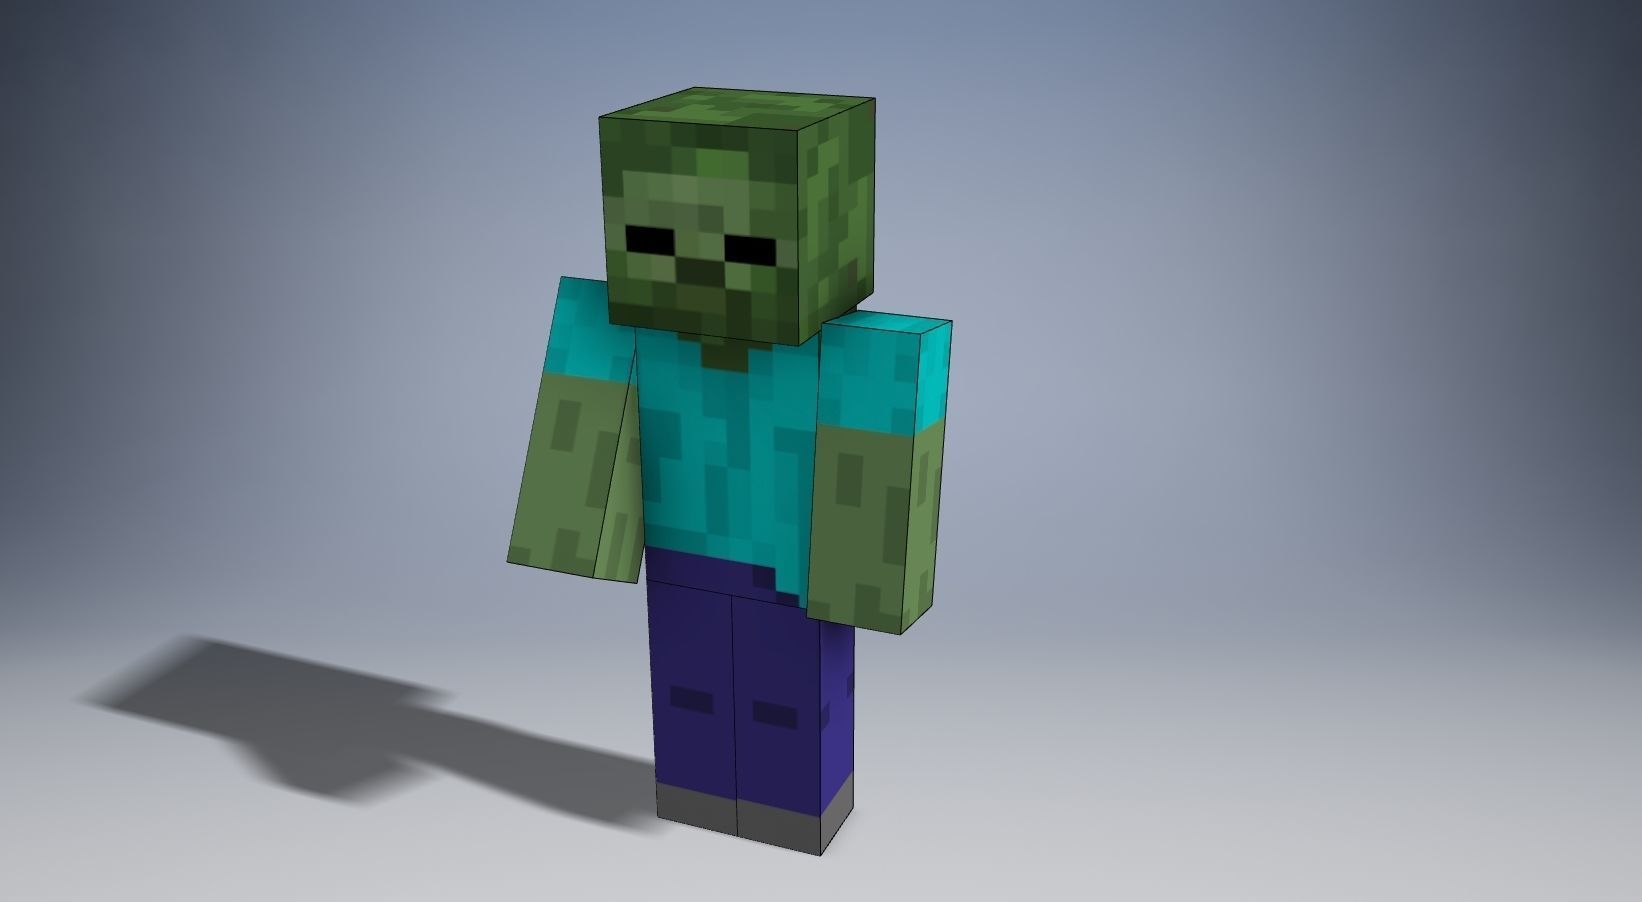 It's just a photo of Trust Minecraft Images for Printing